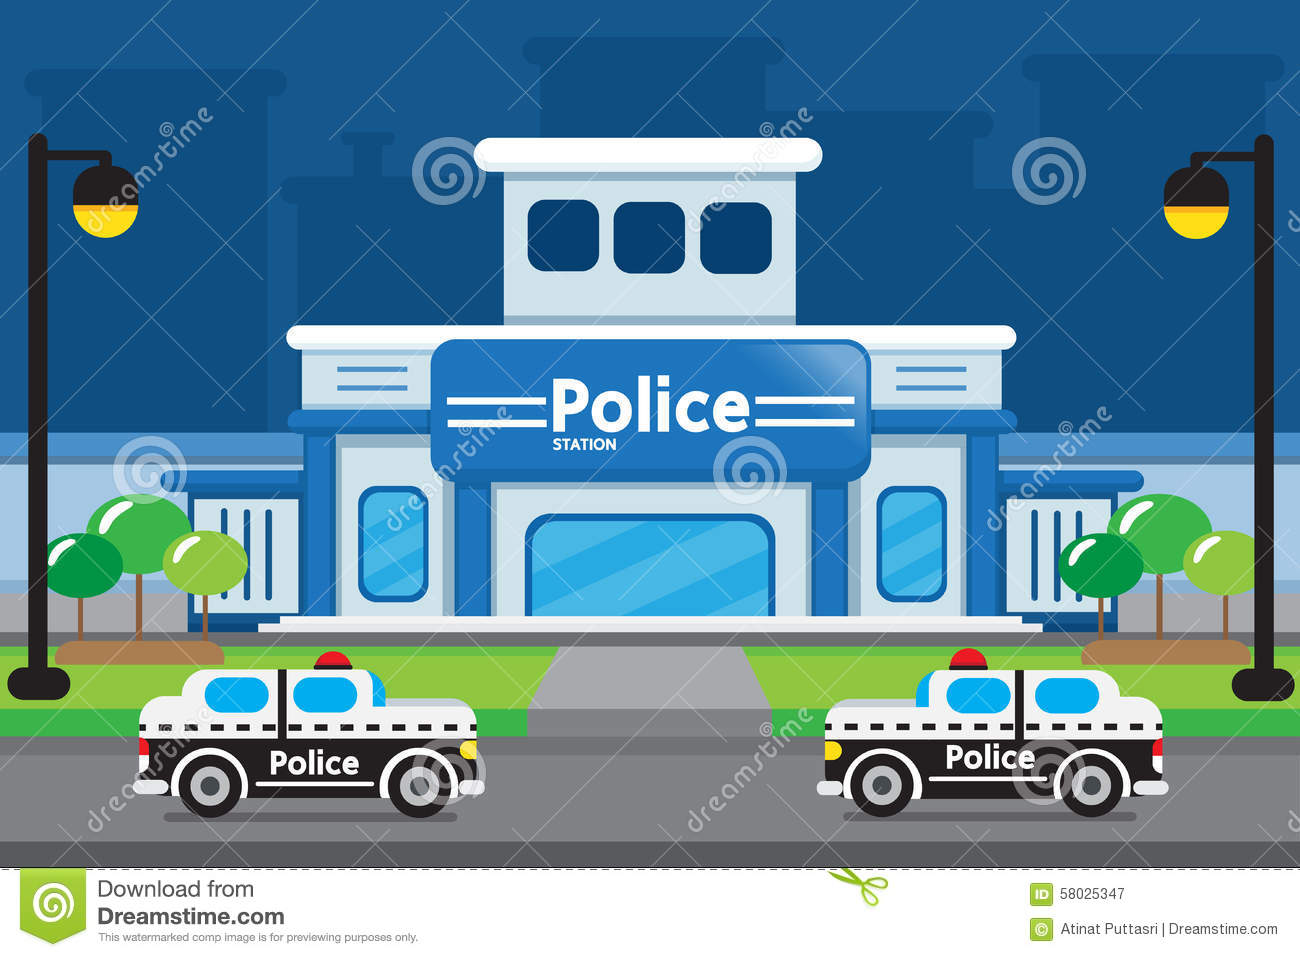 VECTOR : POLICE STATION Stock Vector - Image: 58025347